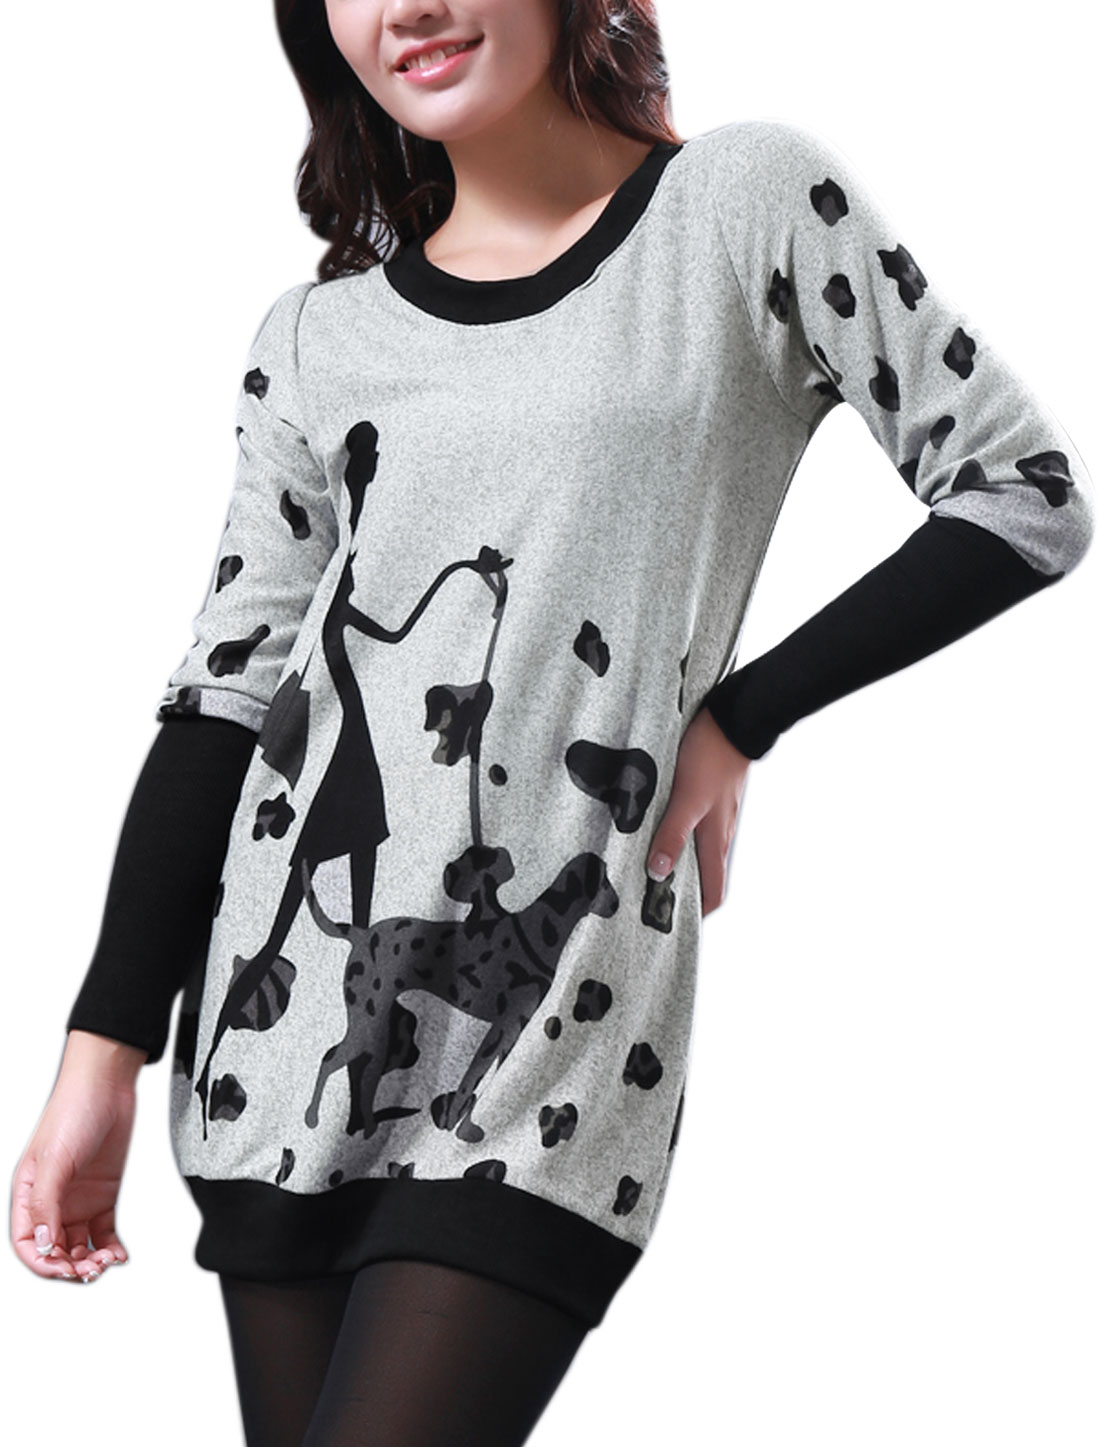 Fashion Round Neck Long Sleeve Black Light Gray Knitted Top for Lady L